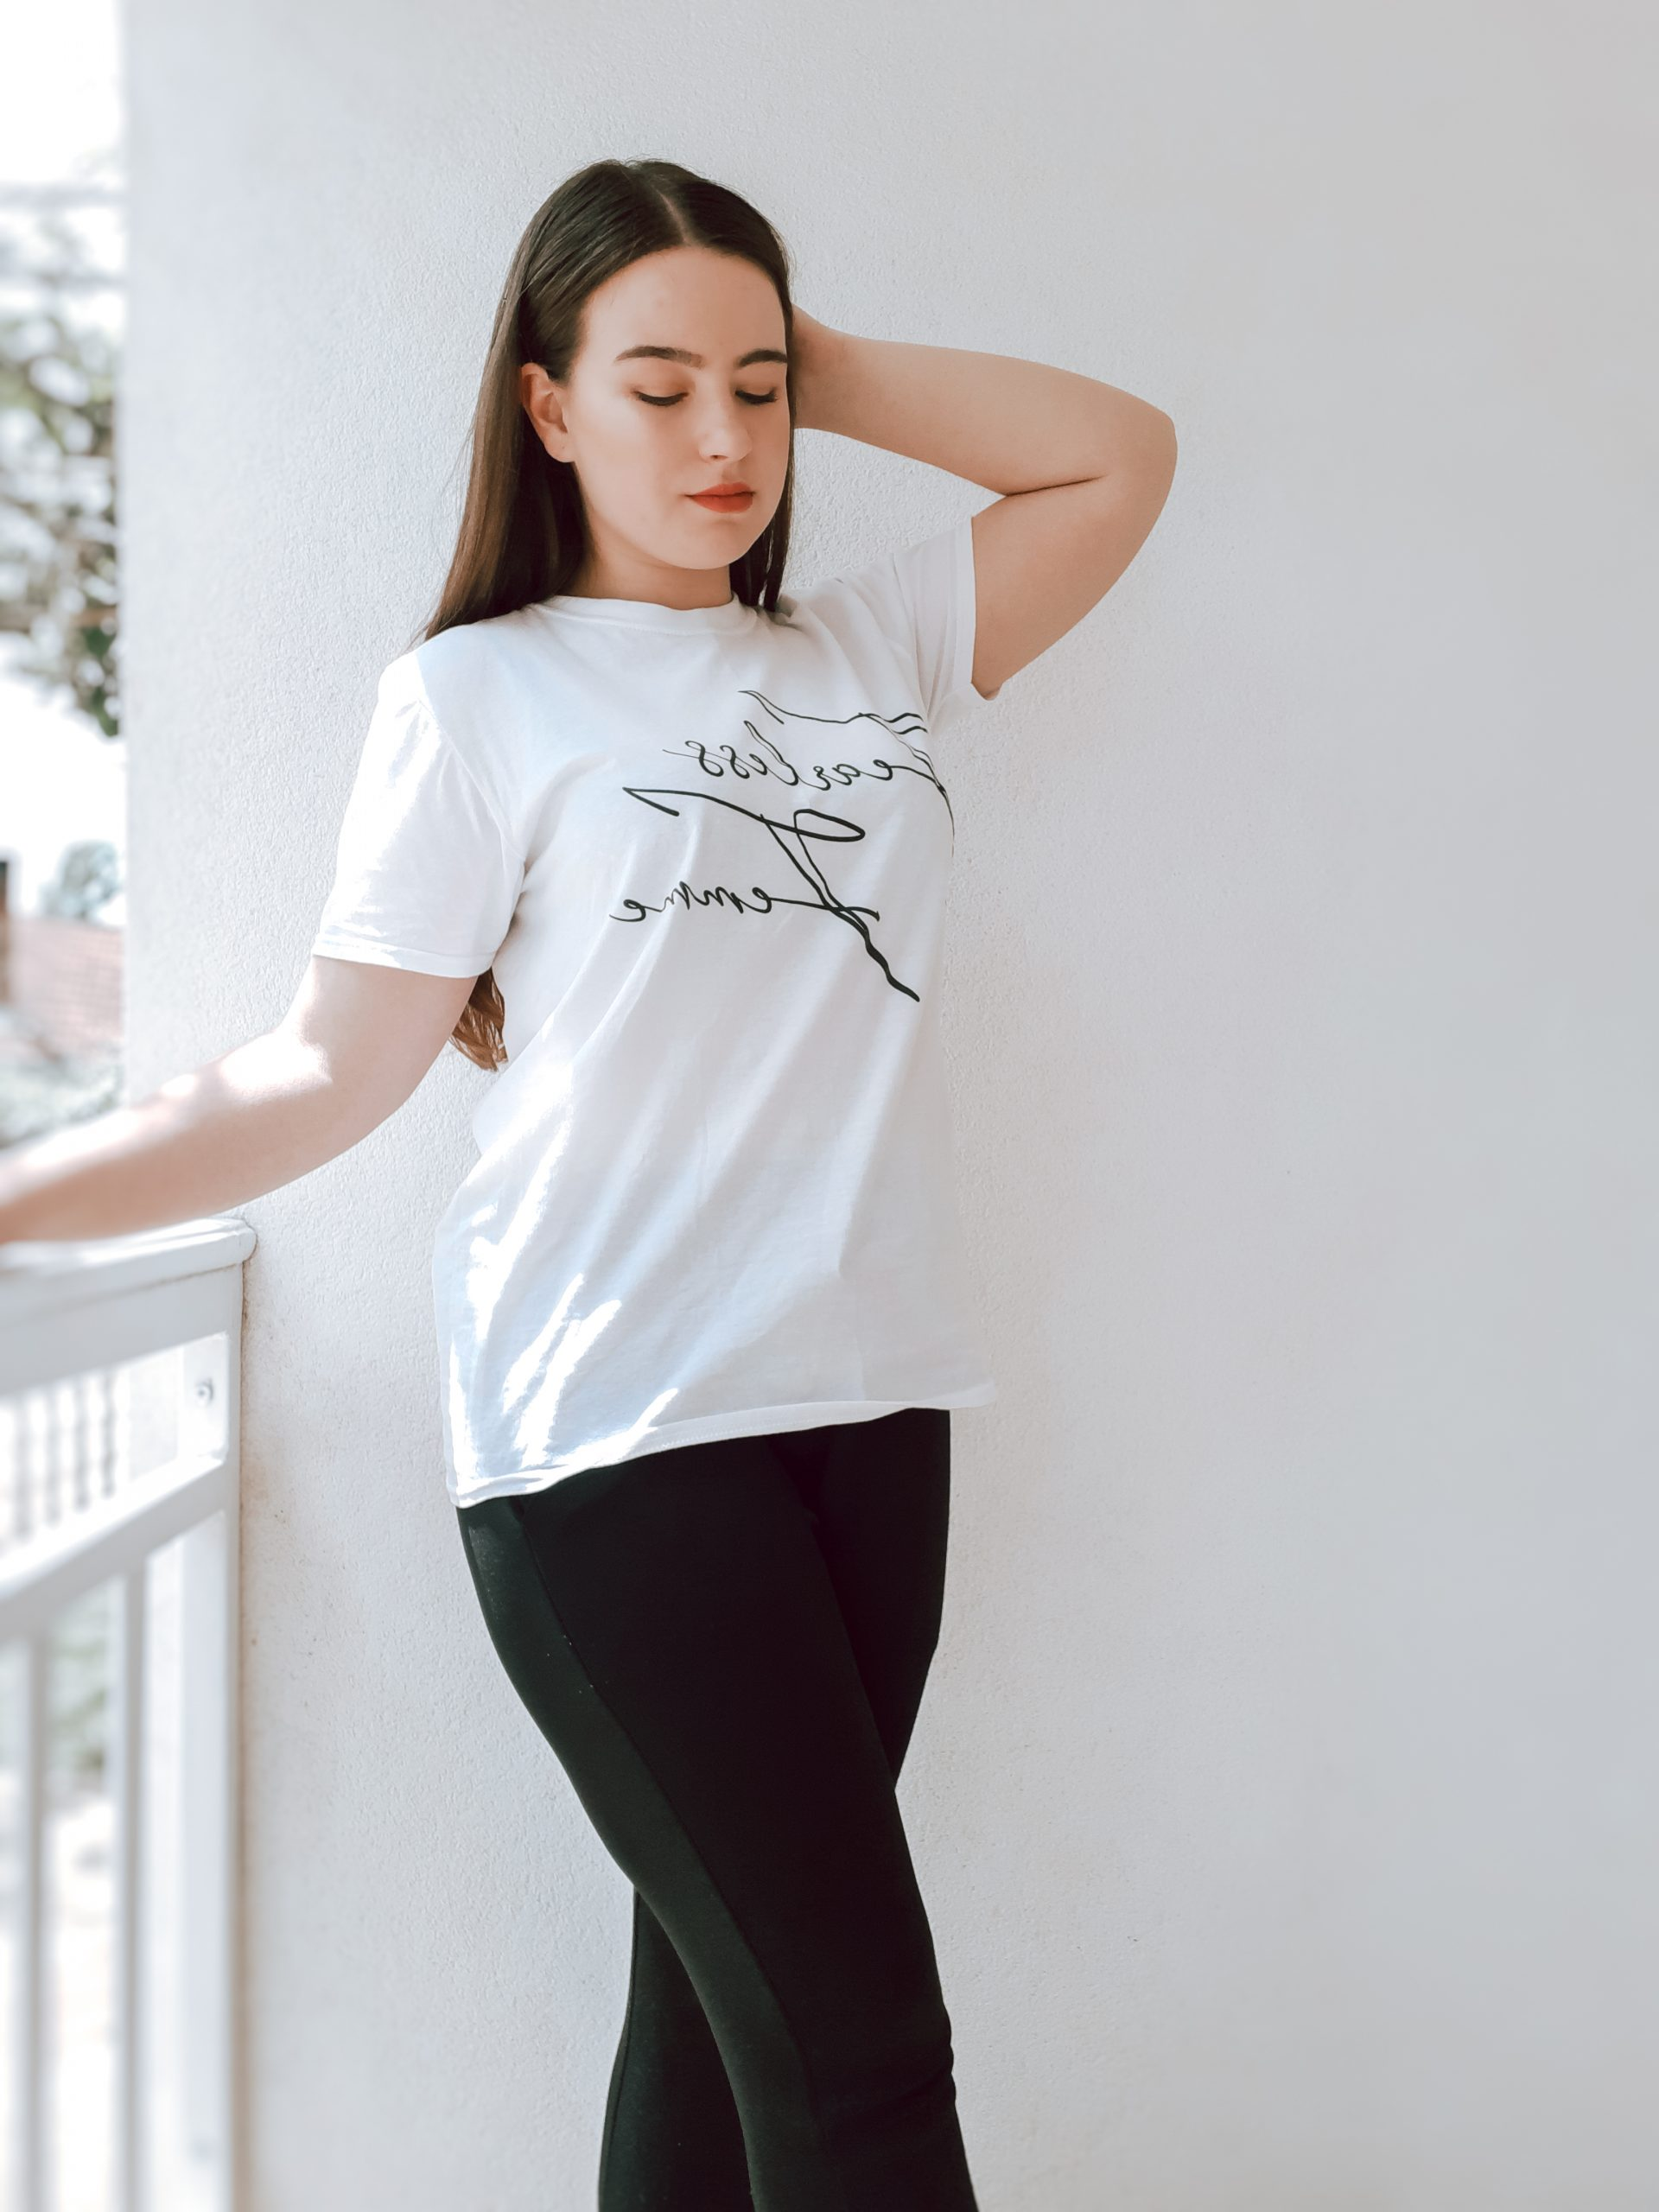 femme luxe try on haul femme luxe finery livinglikev fashion blogger fearless femme t shirt living like v femme luxe review experience